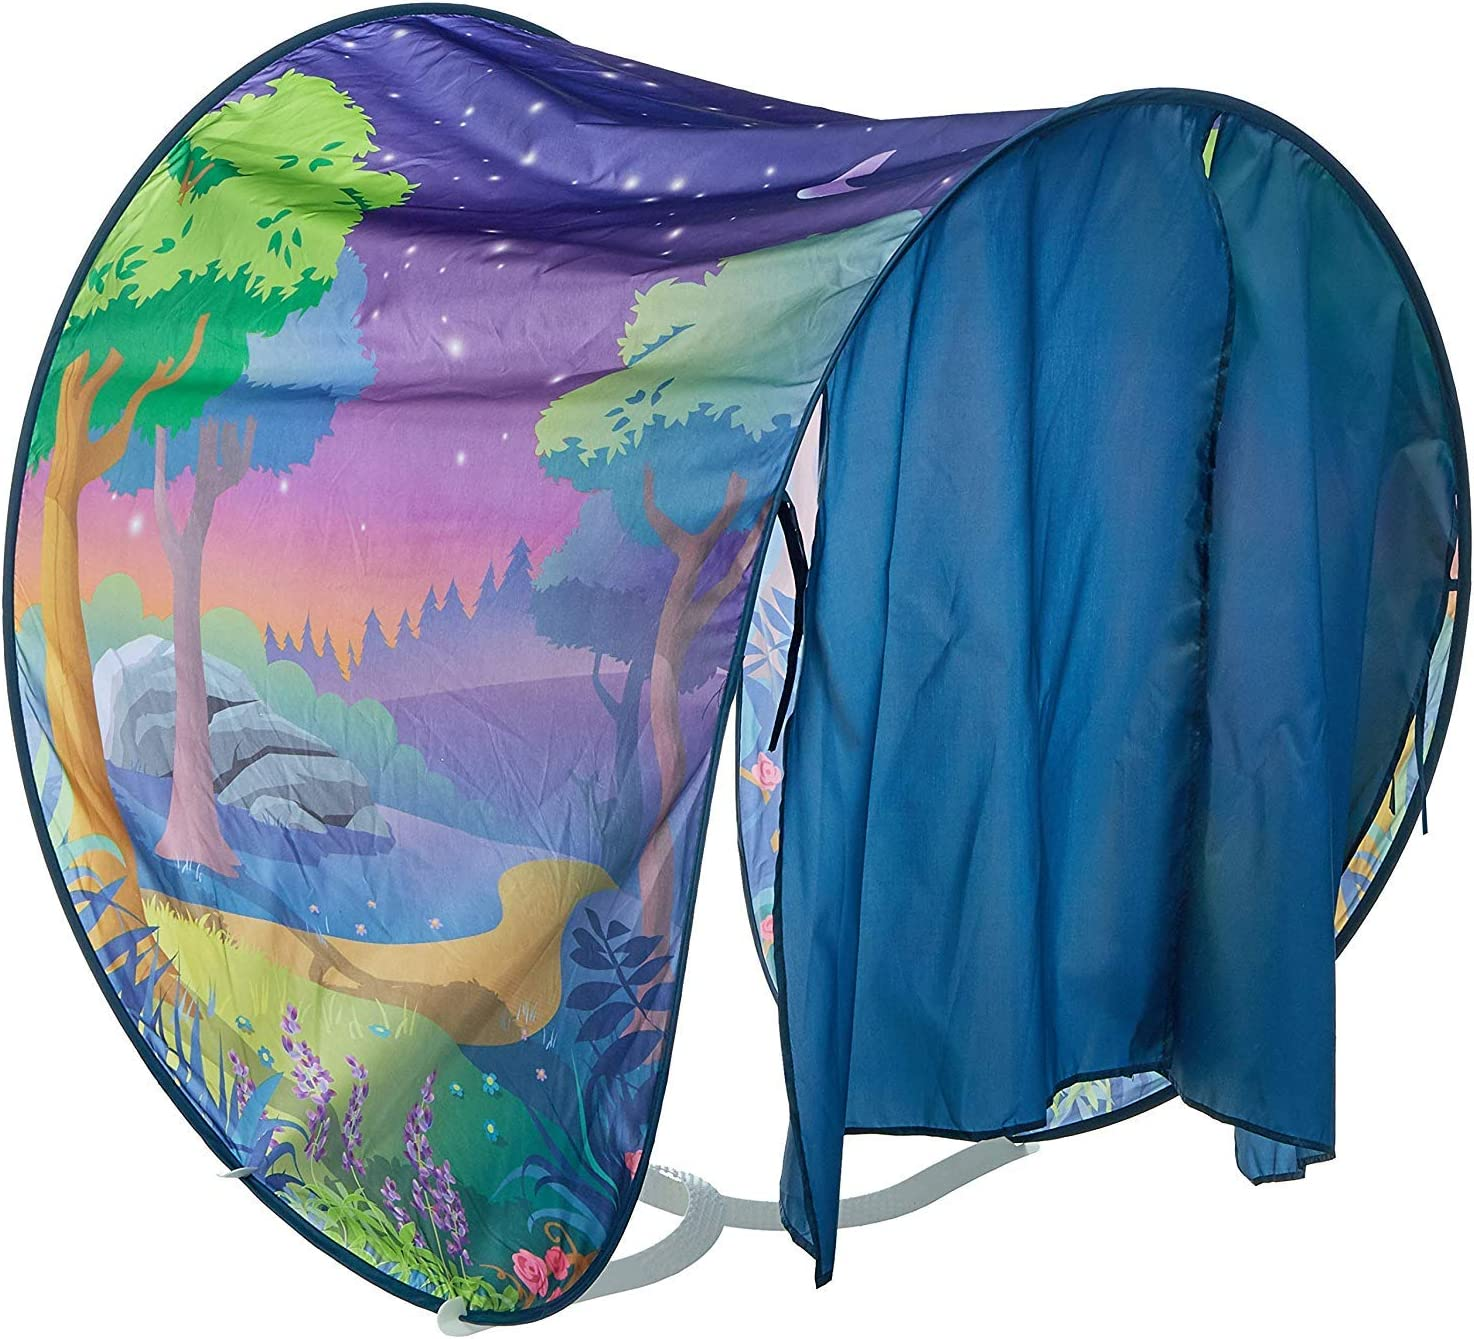 Kozyshow Boys Dream Bed Tent Kids Dinosaur Island Play Tents Deluxe Twin Size Pop up Sleep Tent Children Foldable Fantasy Playhouse Birthday Gifts